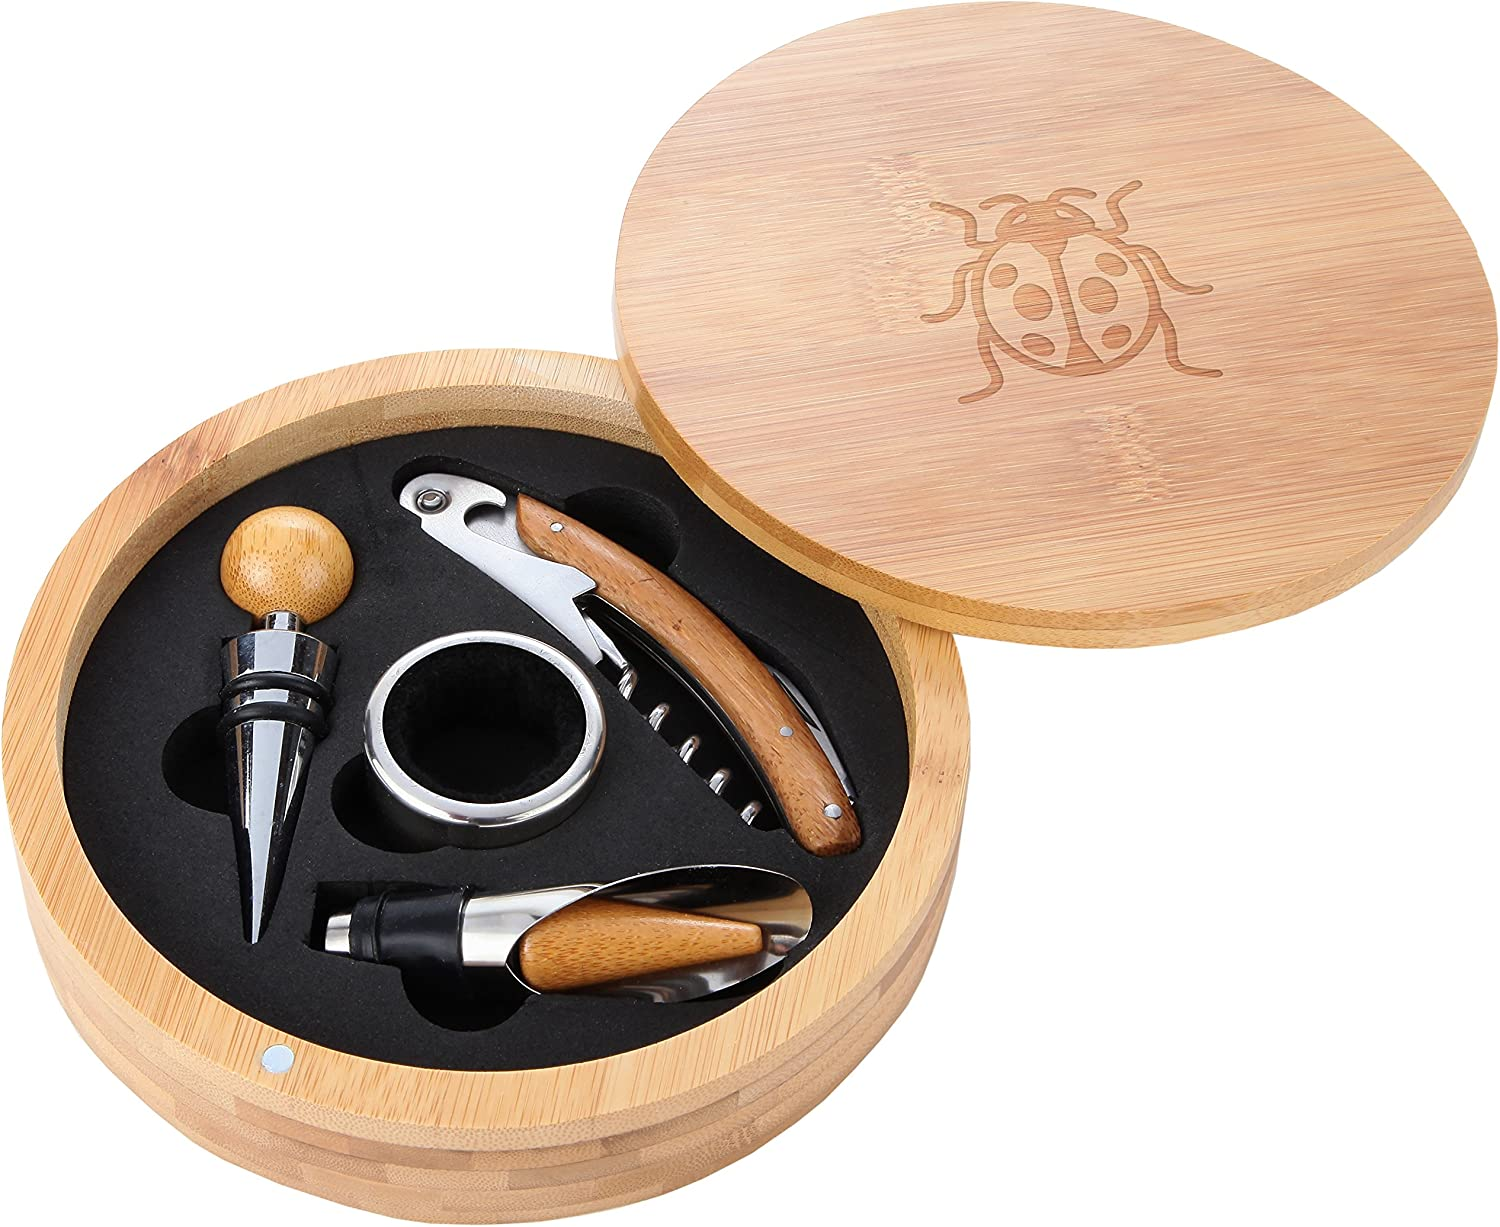 Ladybug unisex Wooden Accessories Company Year-end gift Wine Set - Portable Tool